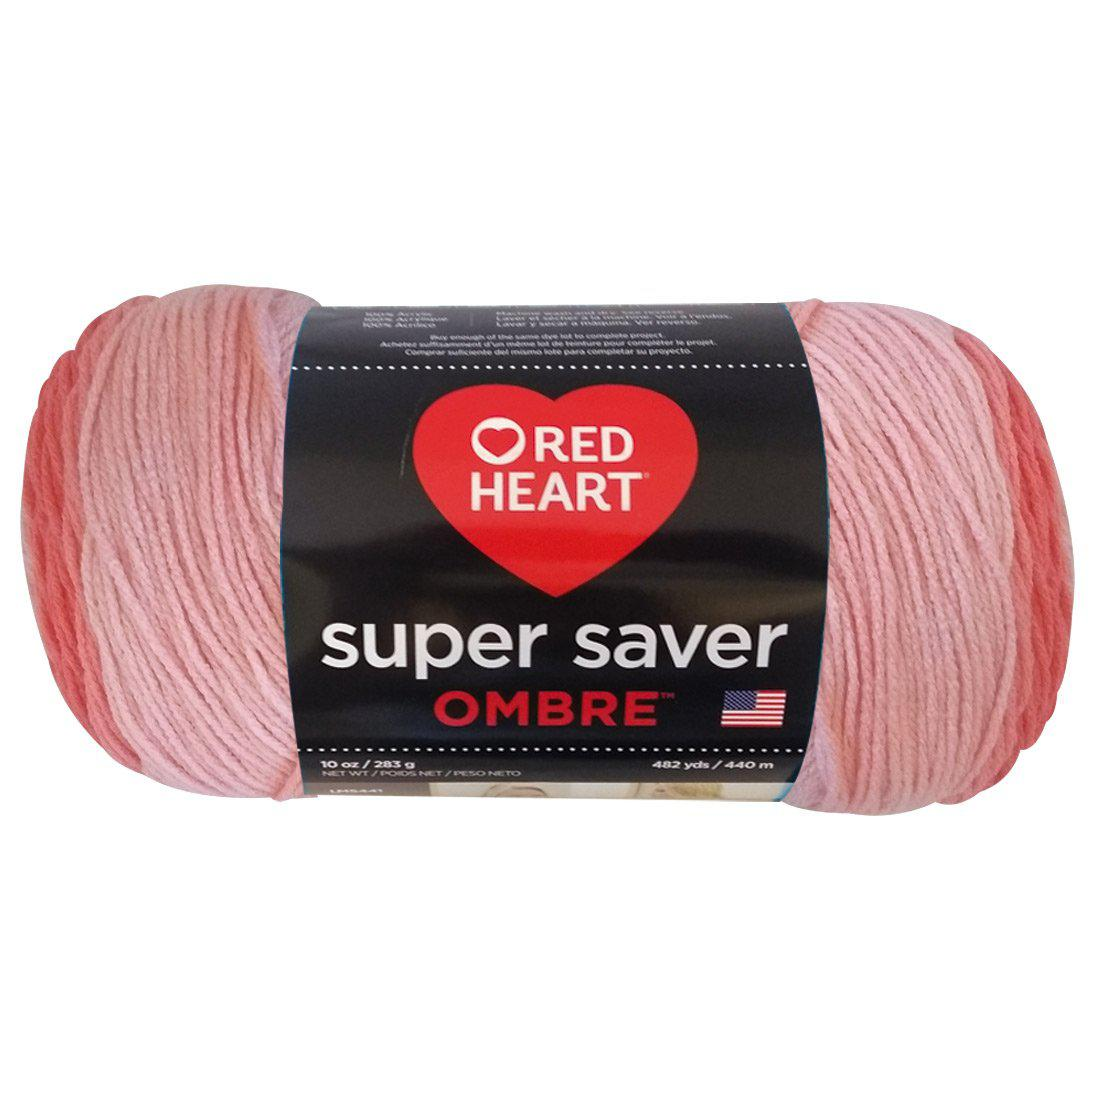 Estambre Super Saver Ombré, Marca Red Heart, Madeja con 233 gr